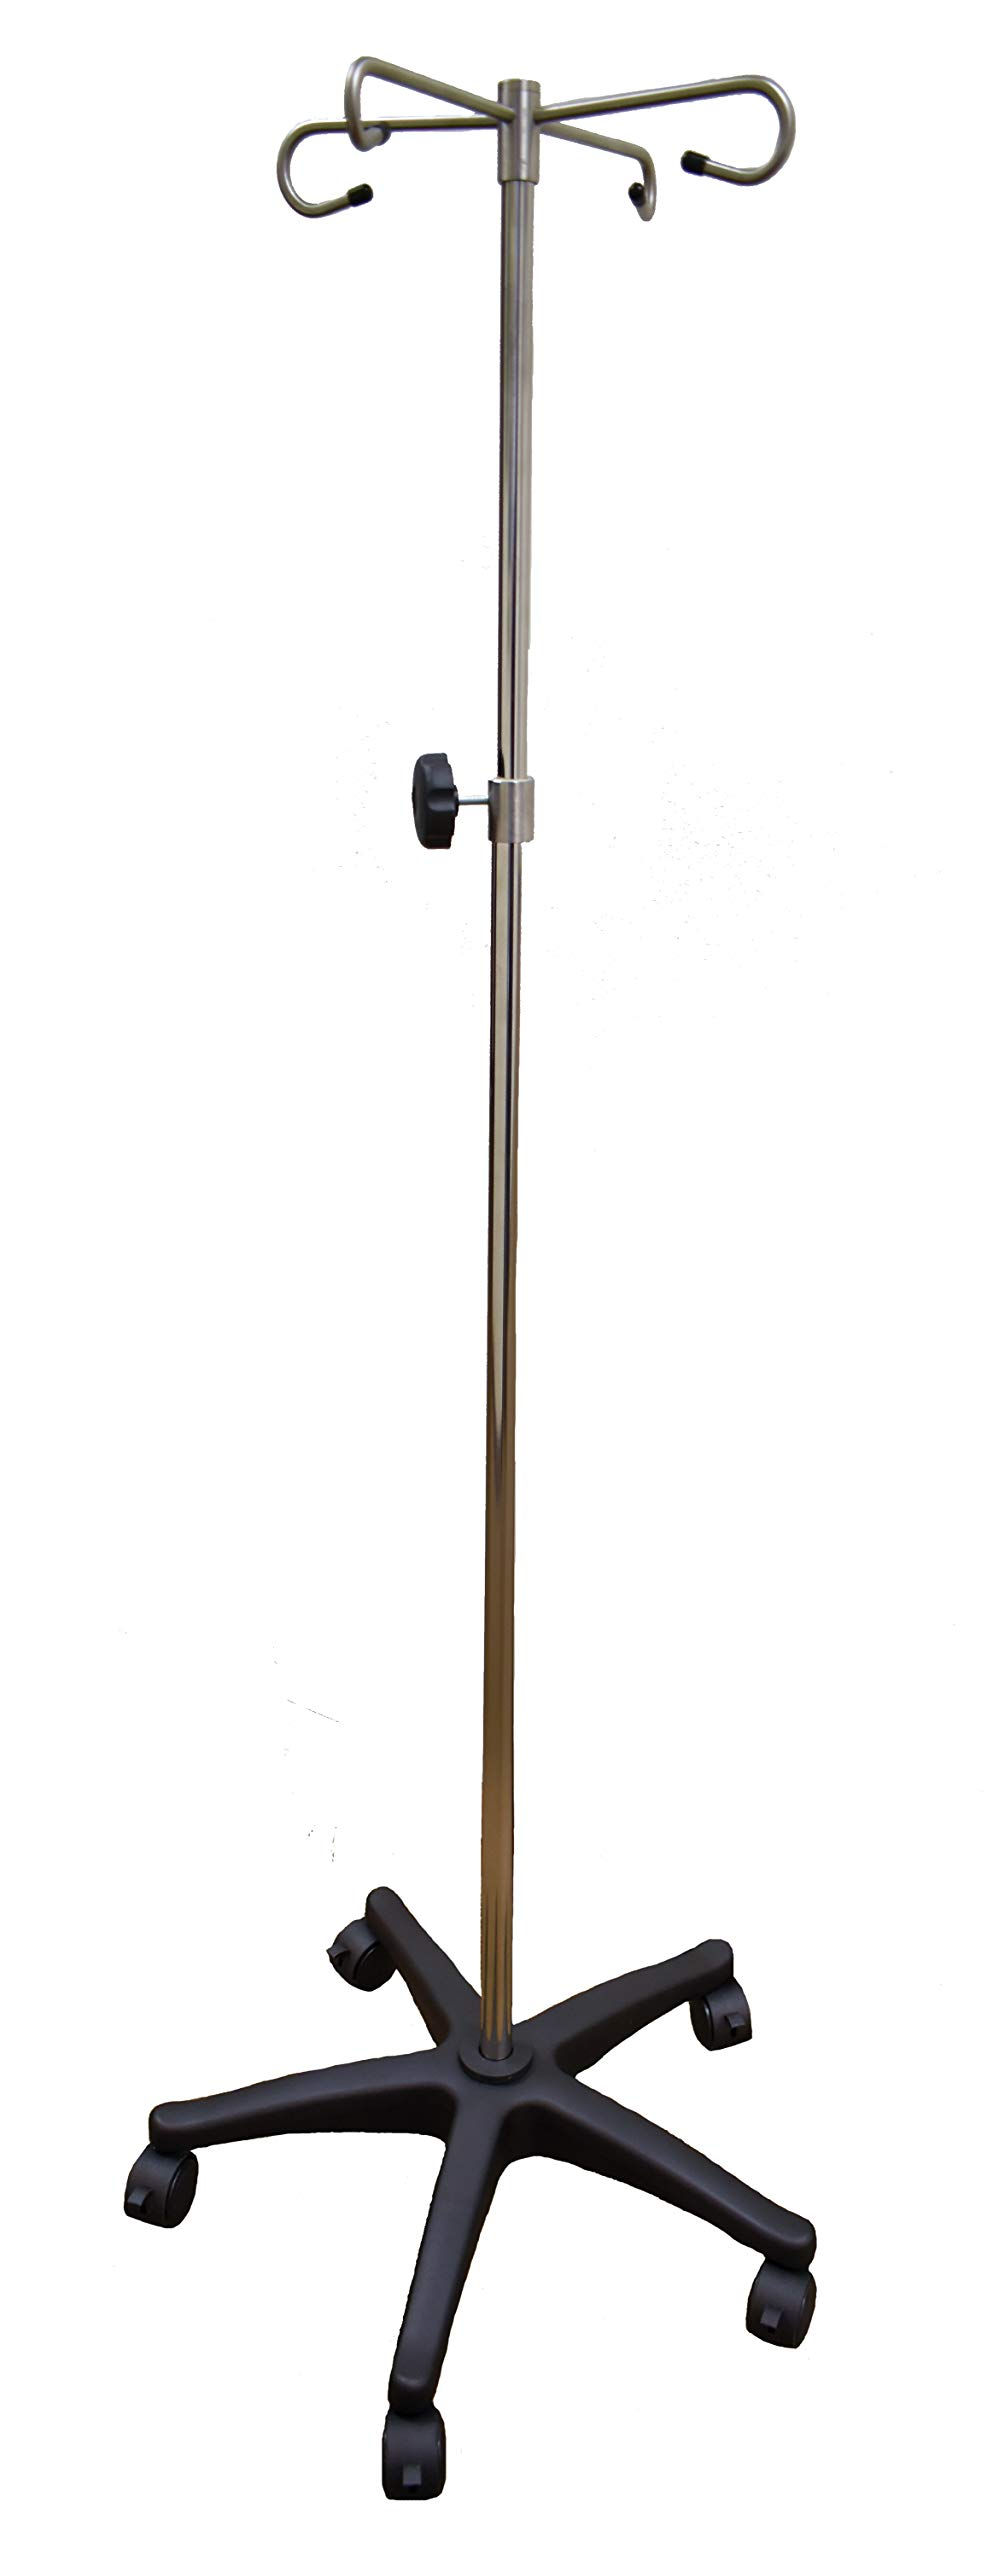 IV Pole with Quad Ram Hook and 5-Leg Polymer Base with 5 Locking Casters